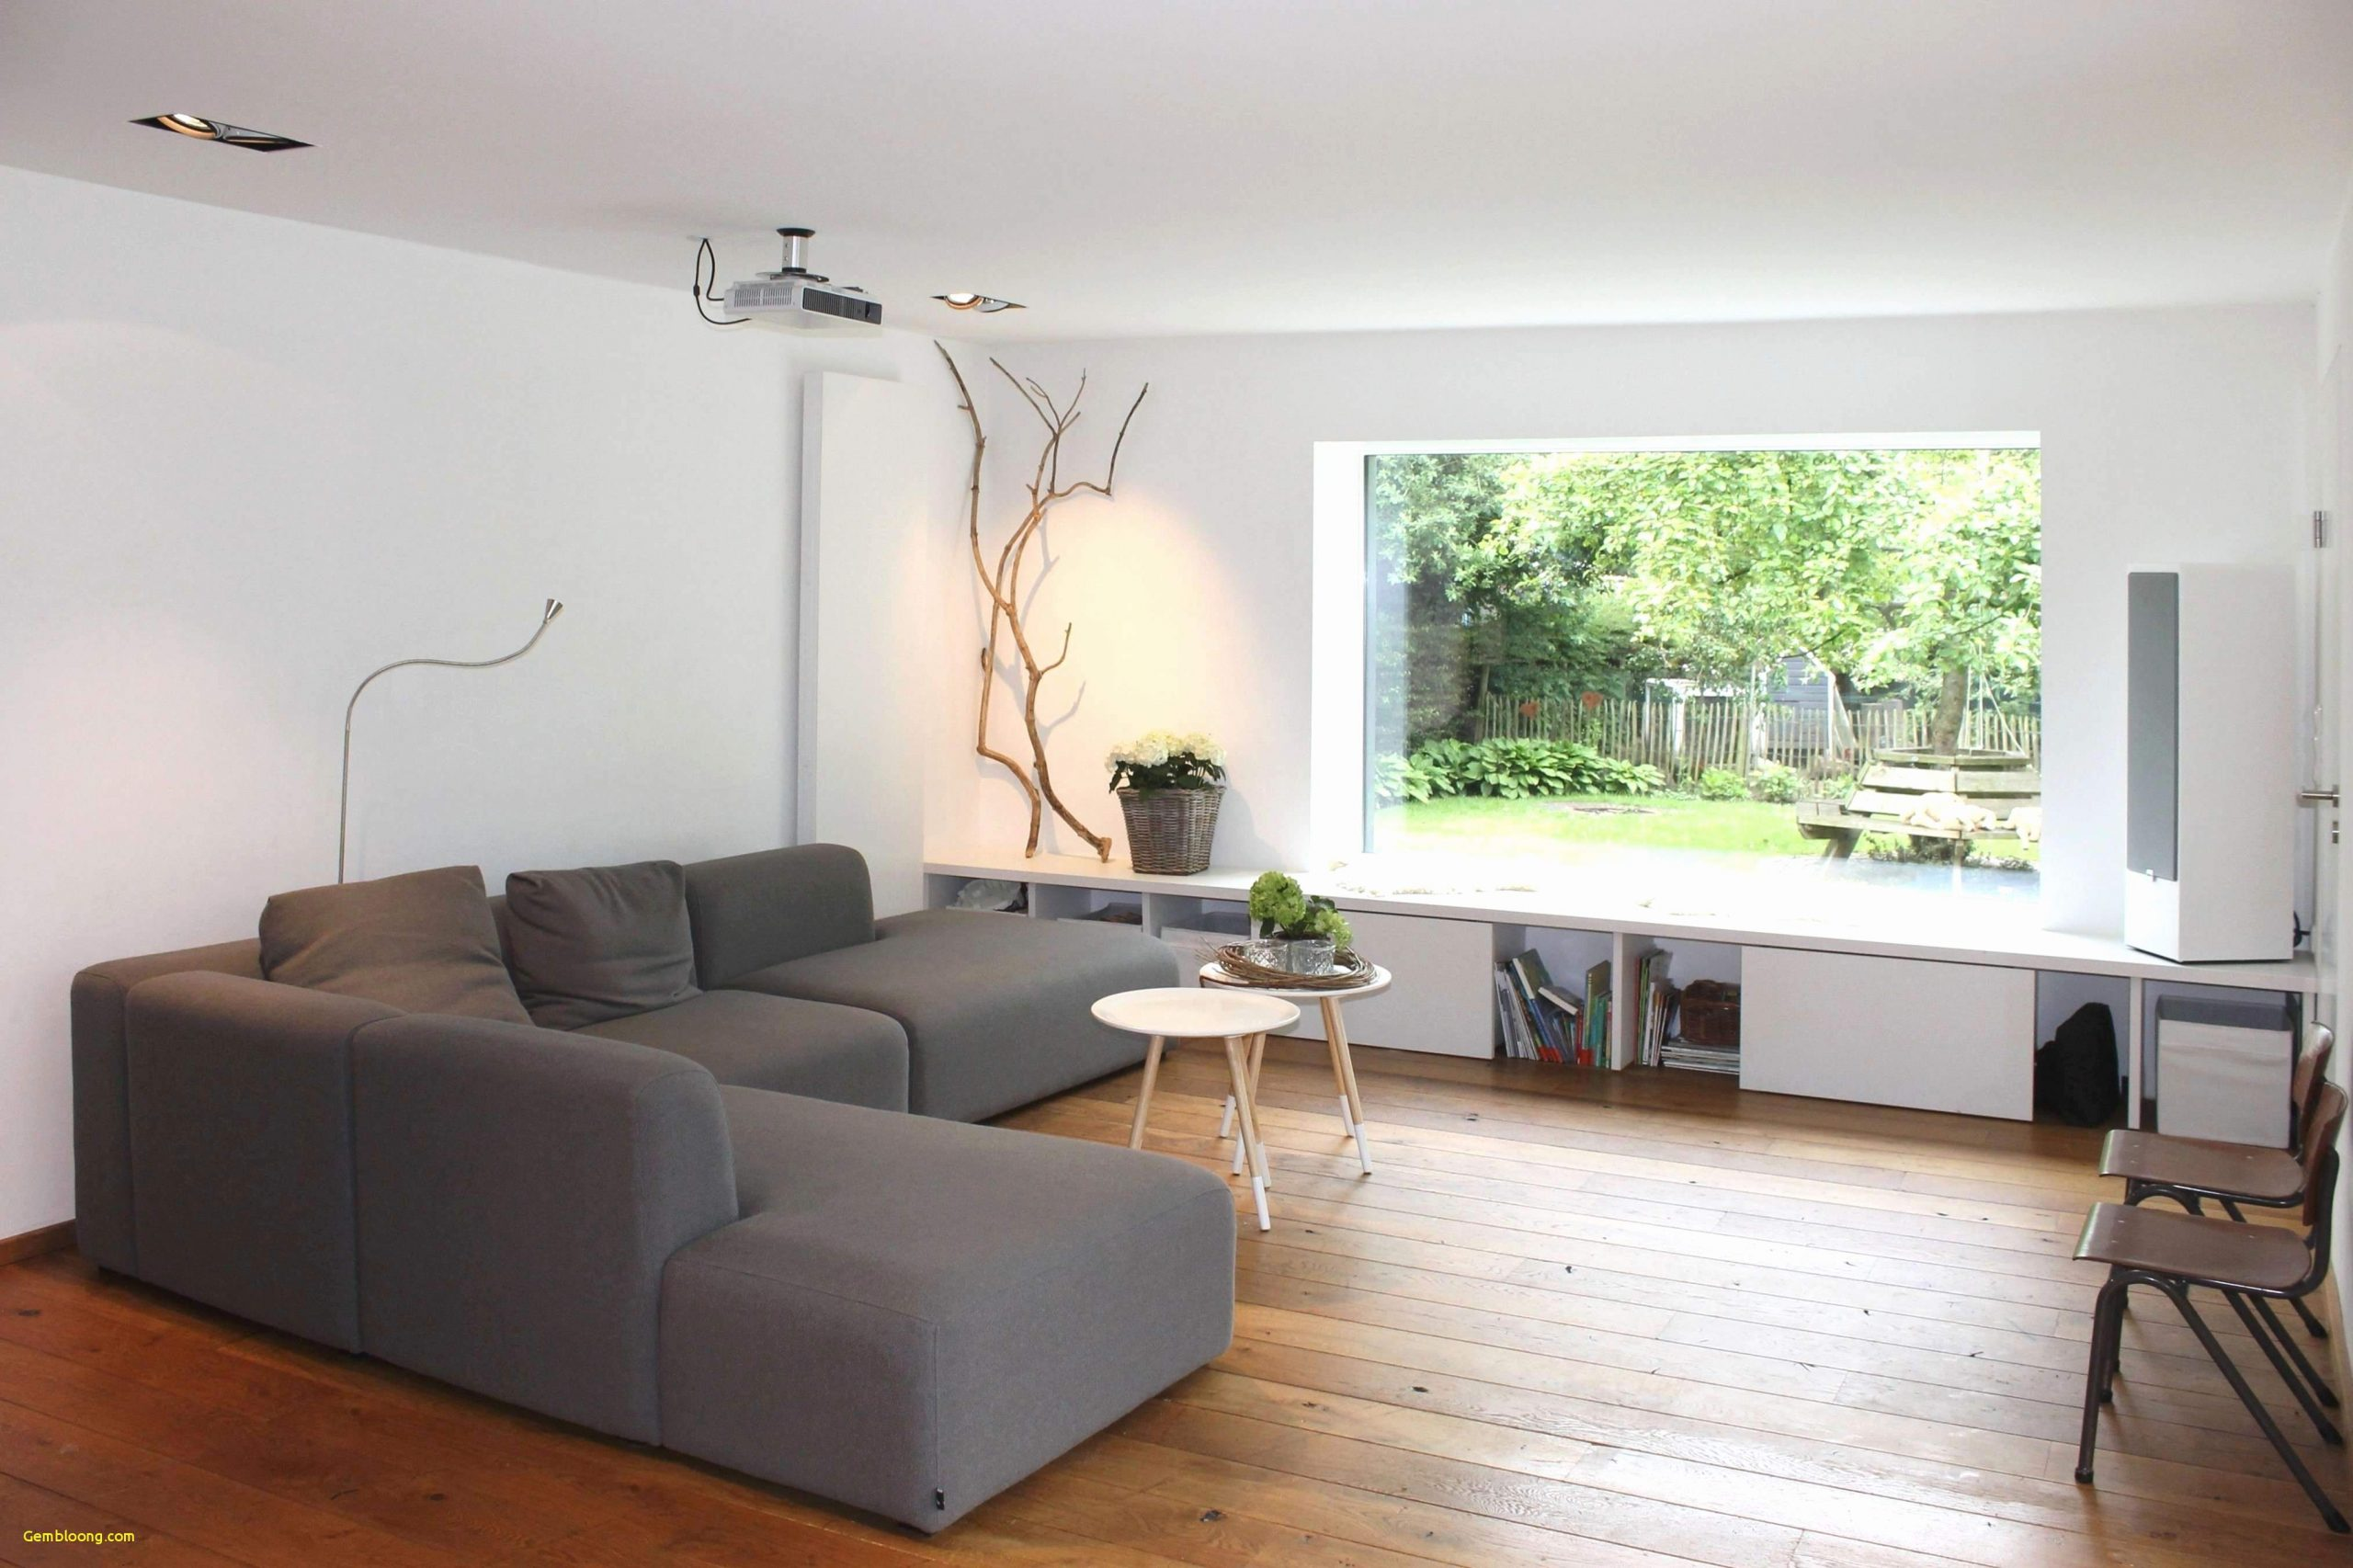 Full Size of Led Beleuchtung Wohnzimmer Led Beleuchtung Wohnzimmer Farbwechsel Led Beleuchtung Wohnzimmer Indirekt Led Streifen Beleuchtung Wohnzimmer Wohnzimmer Led Beleuchtung Wohnzimmer